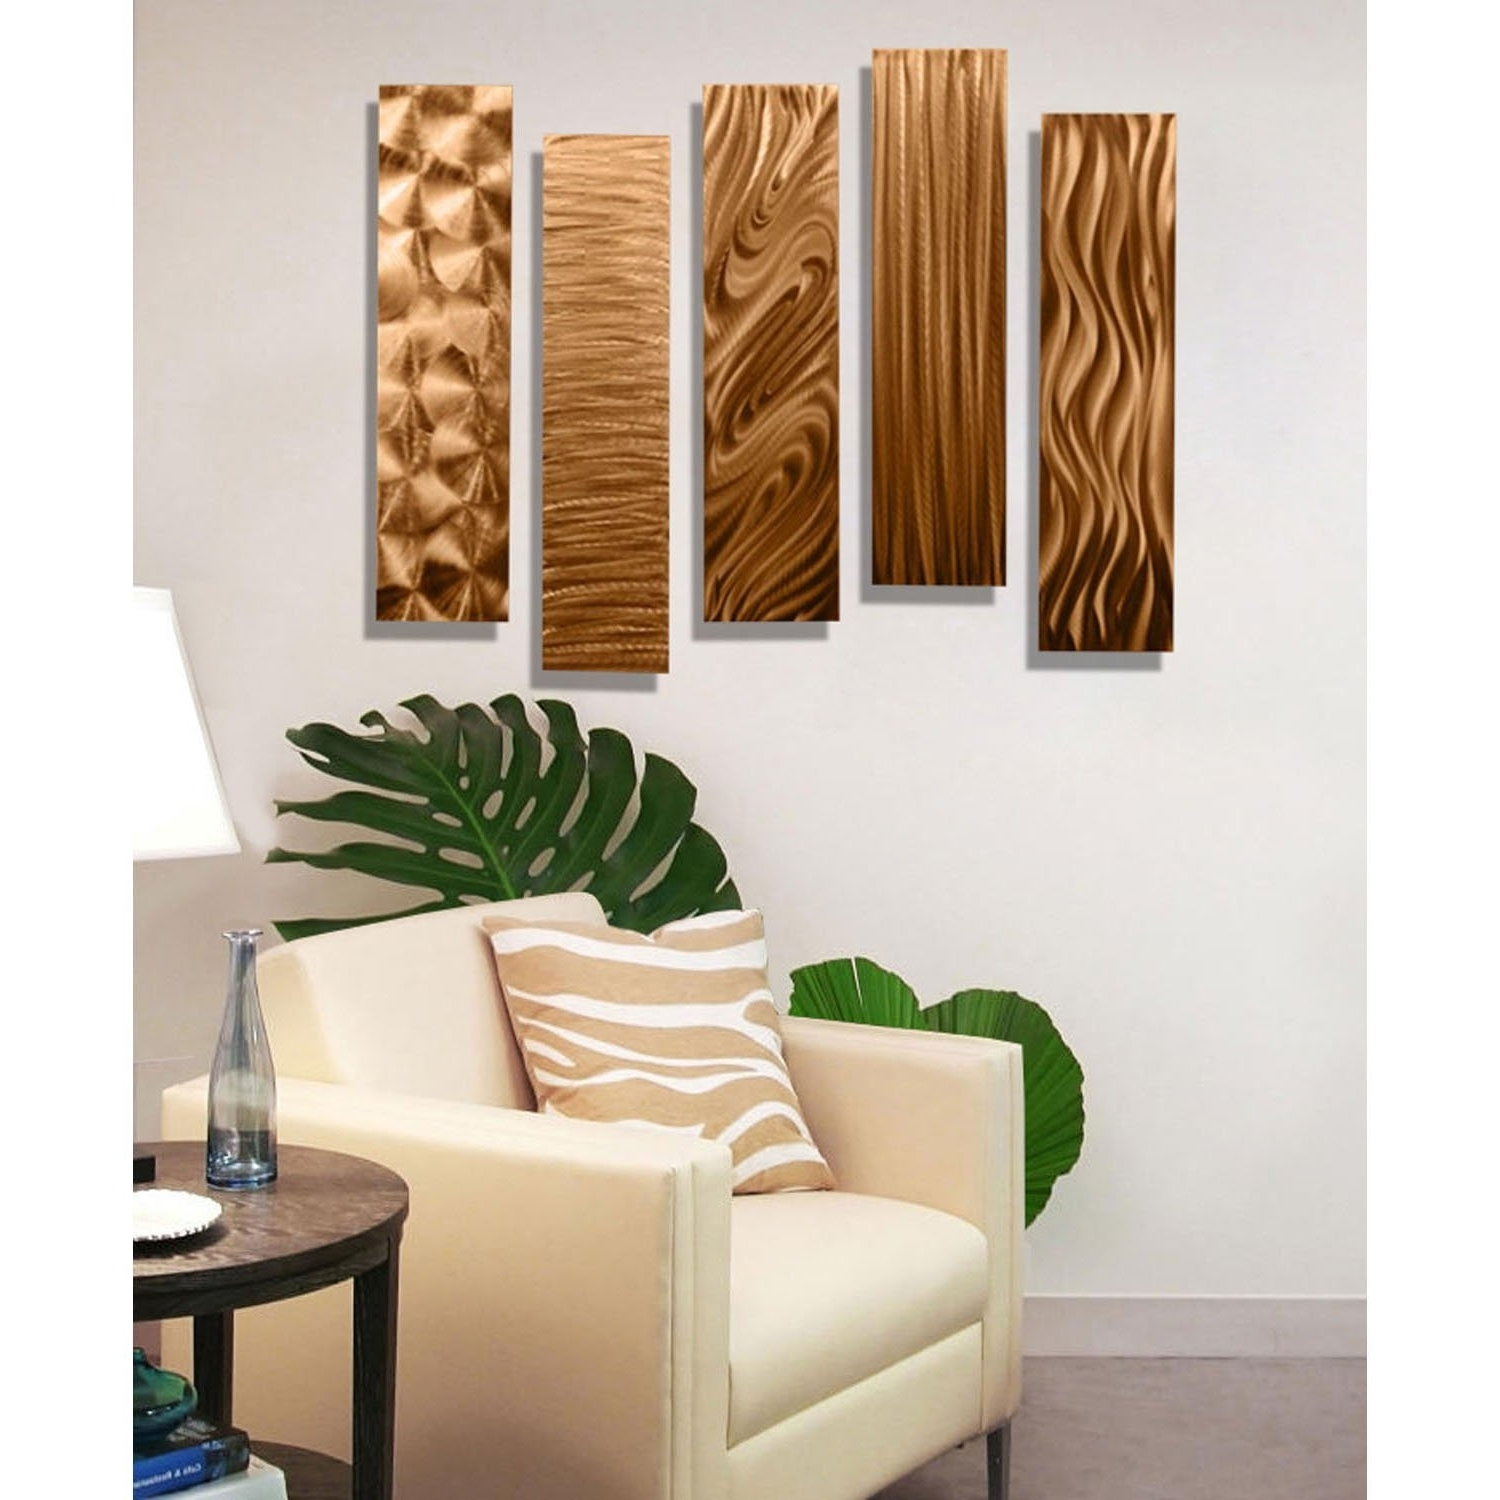 Most Popular Amazon: Statements2000 Copper Metal Wall Art Decor, 5 Piece Throughout Rectangular Metal Wall Art (View 4 of 15)